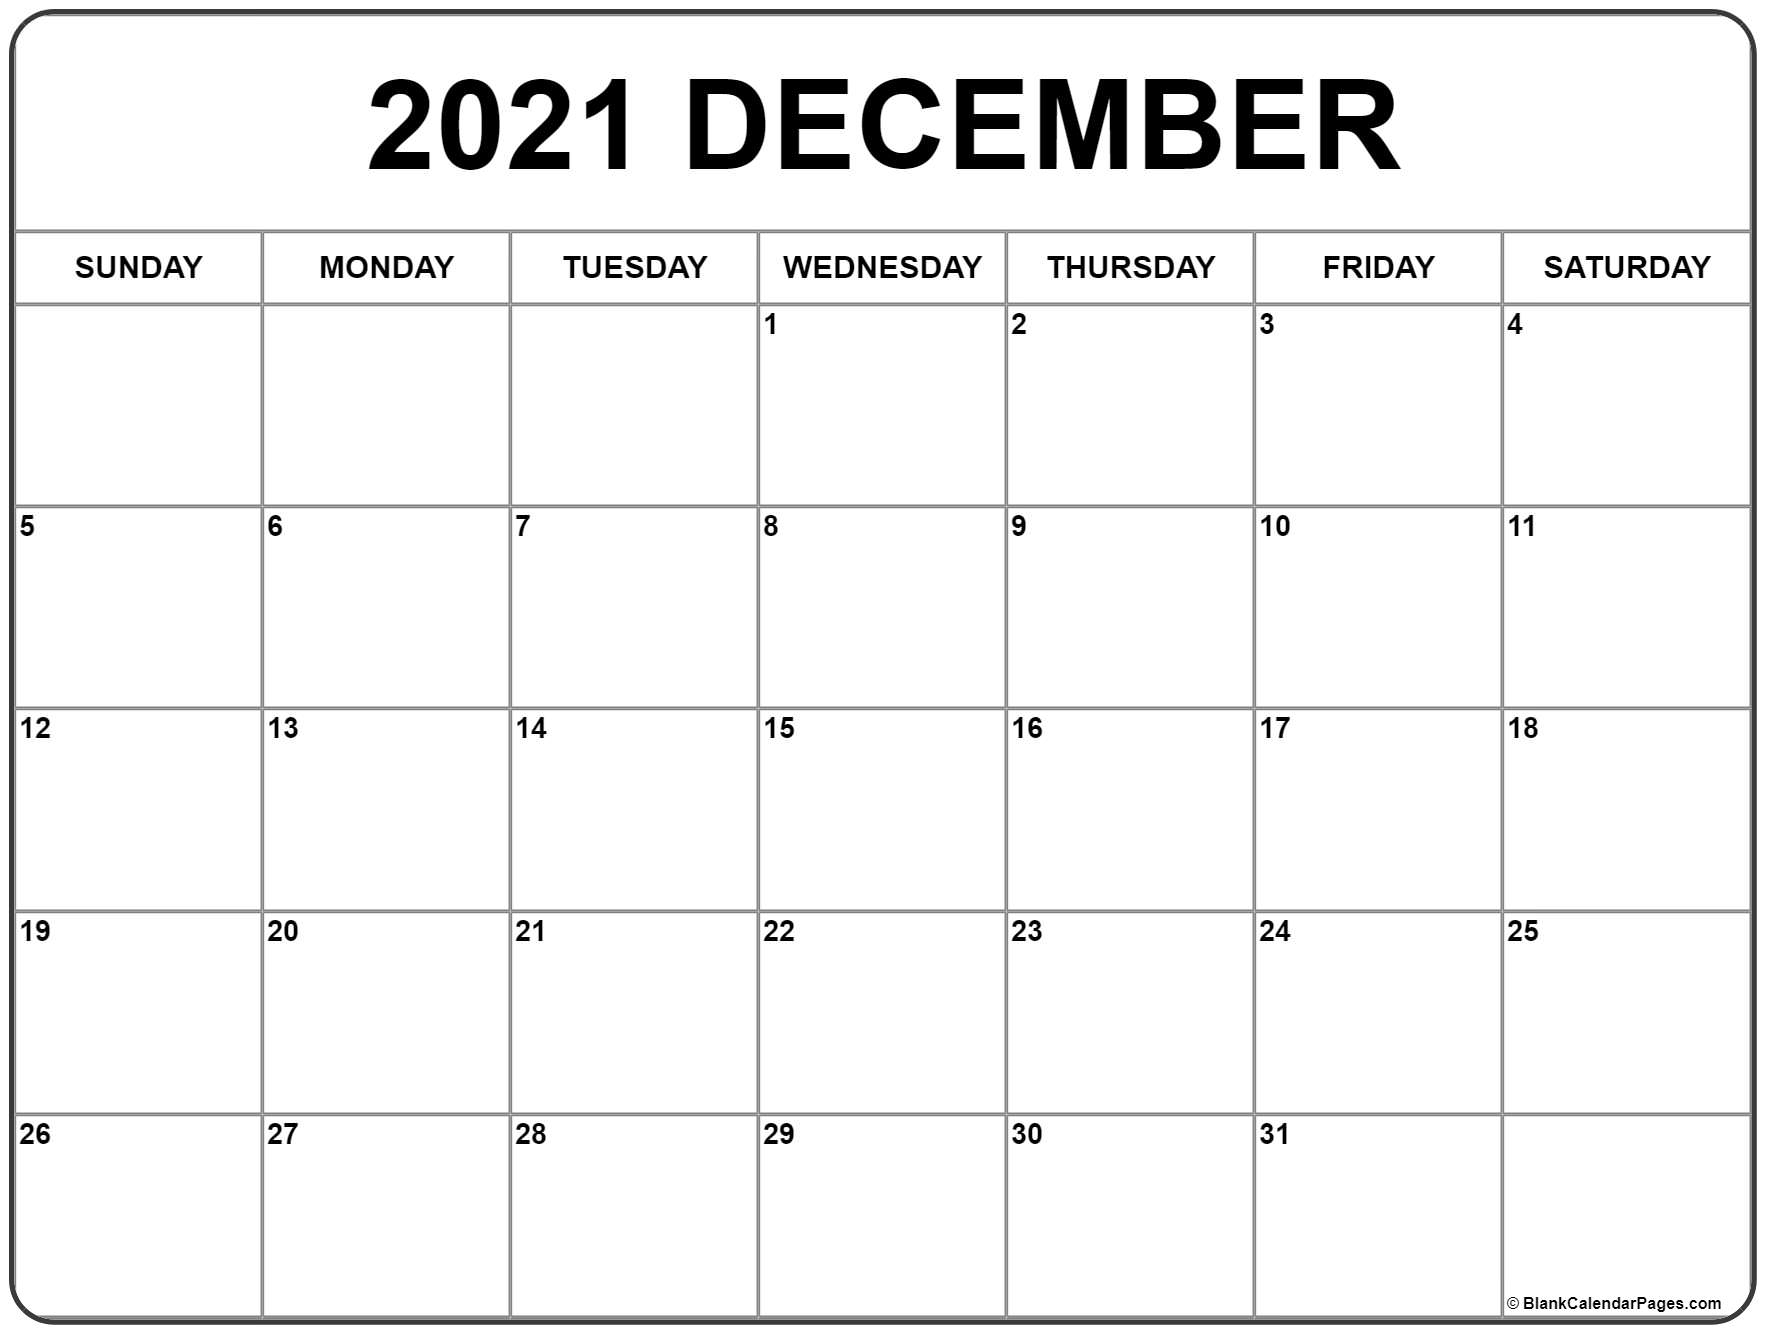 Pick 2021 December Caemdar Tp Rint For No Download With Pictures